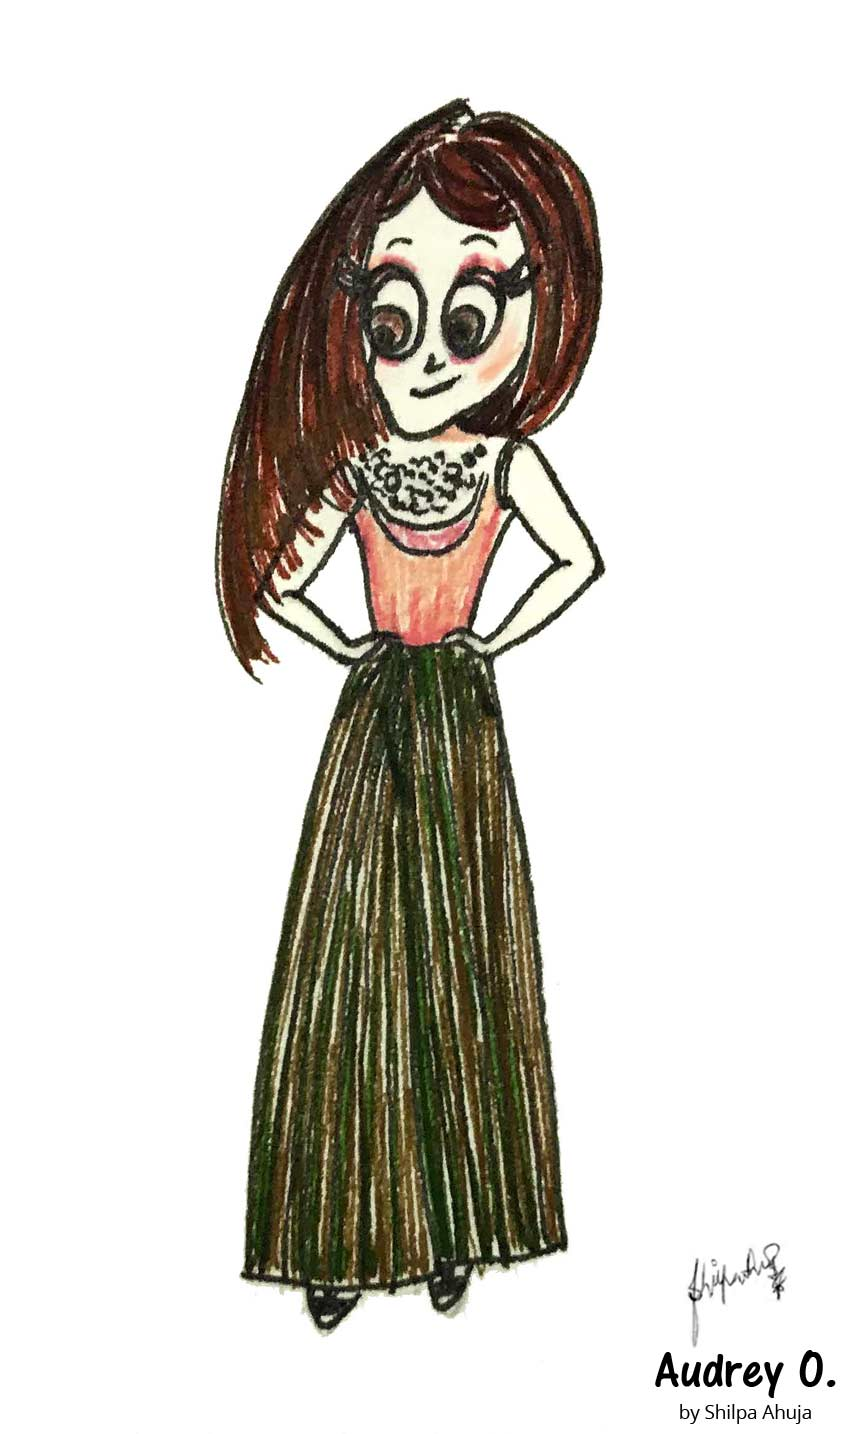 audrey-o-cartoon-girl-fashion-illustration-palazzo-style